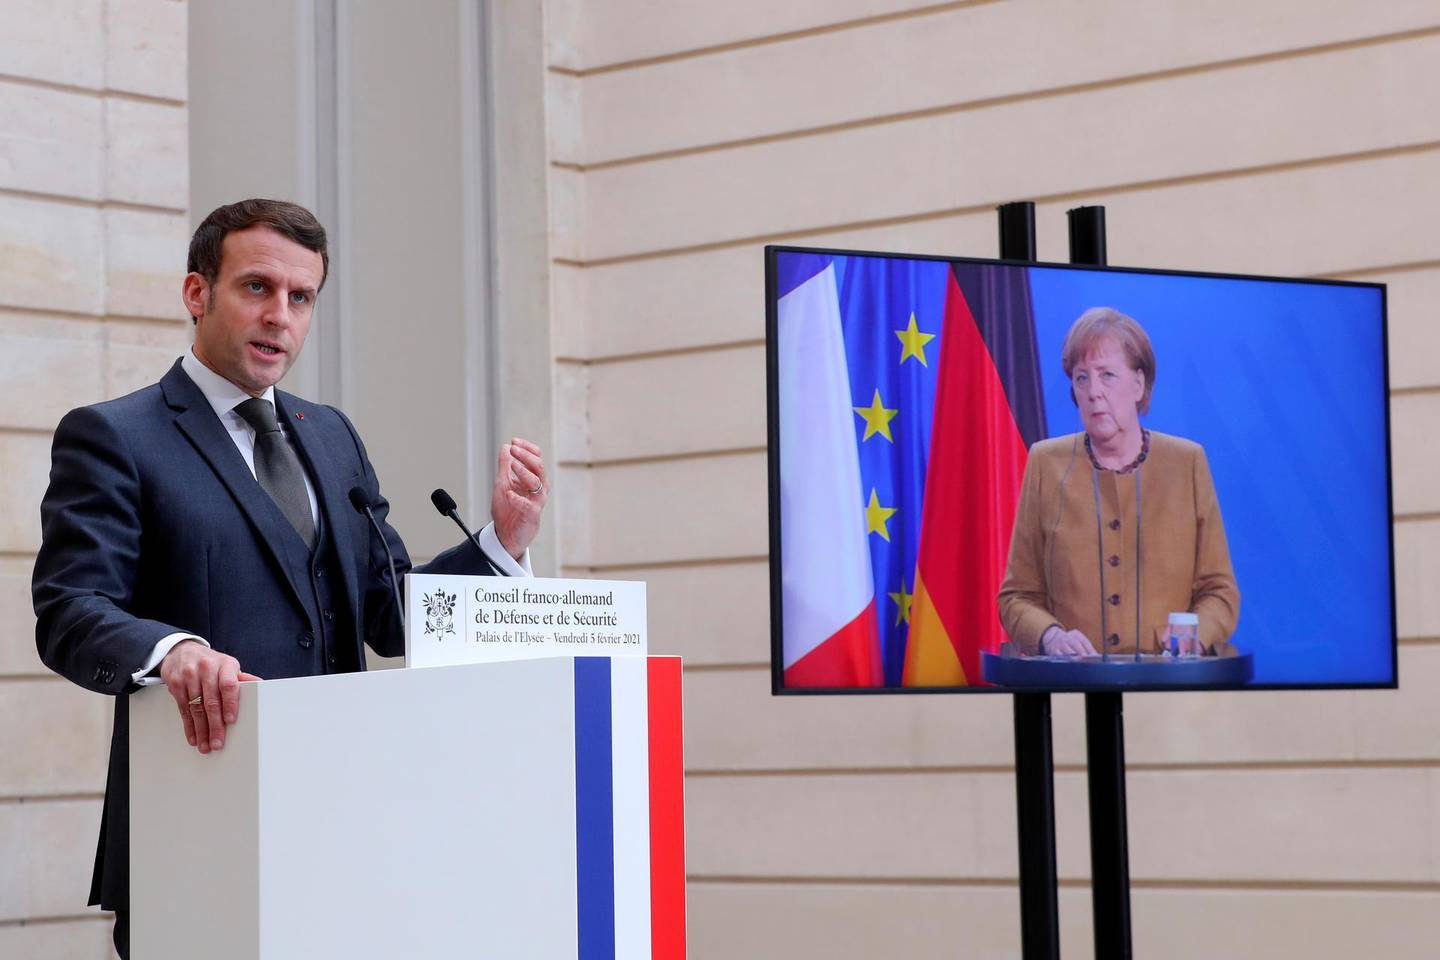 French President Emmanuel Macron speaks as German Chancellor Angela Merkel looks on after a German-French Security Council video conference at the Elysee Palace in Paris, France February 5, 2021.   Thibault Camus/Pool via REUTERS